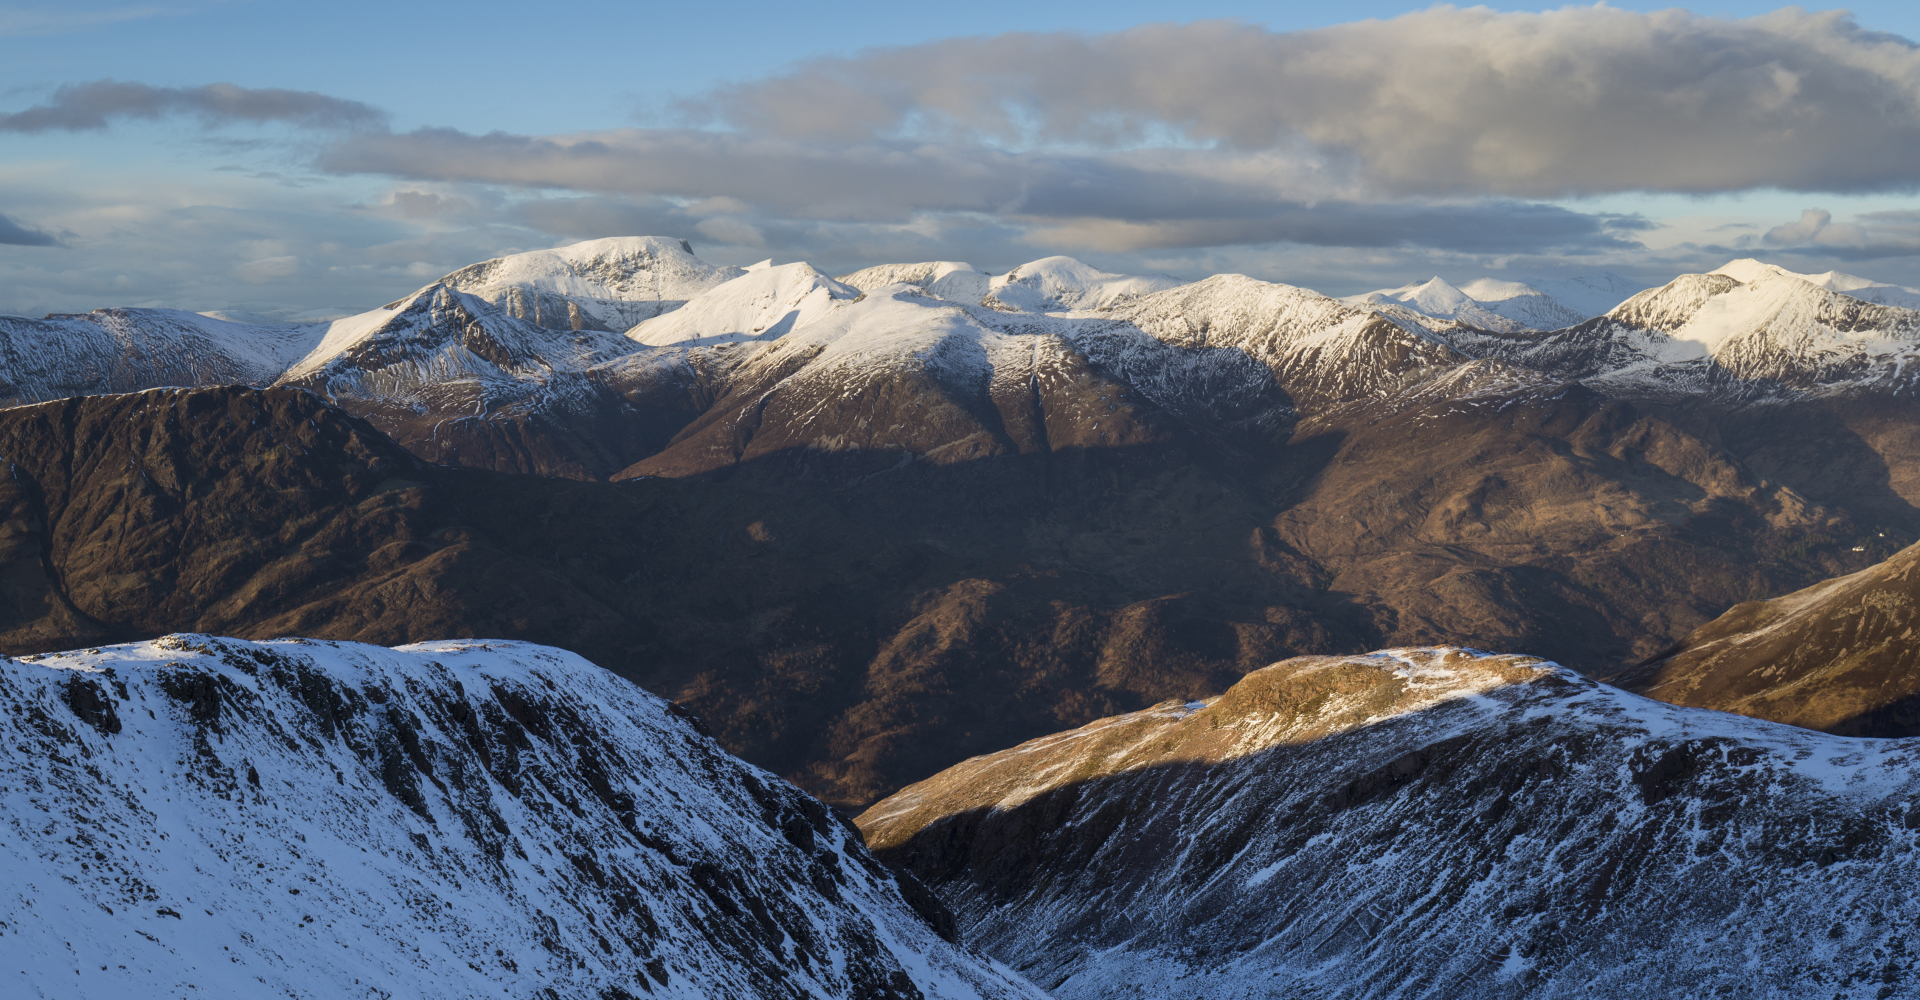 Ben Nevis and the Mamores